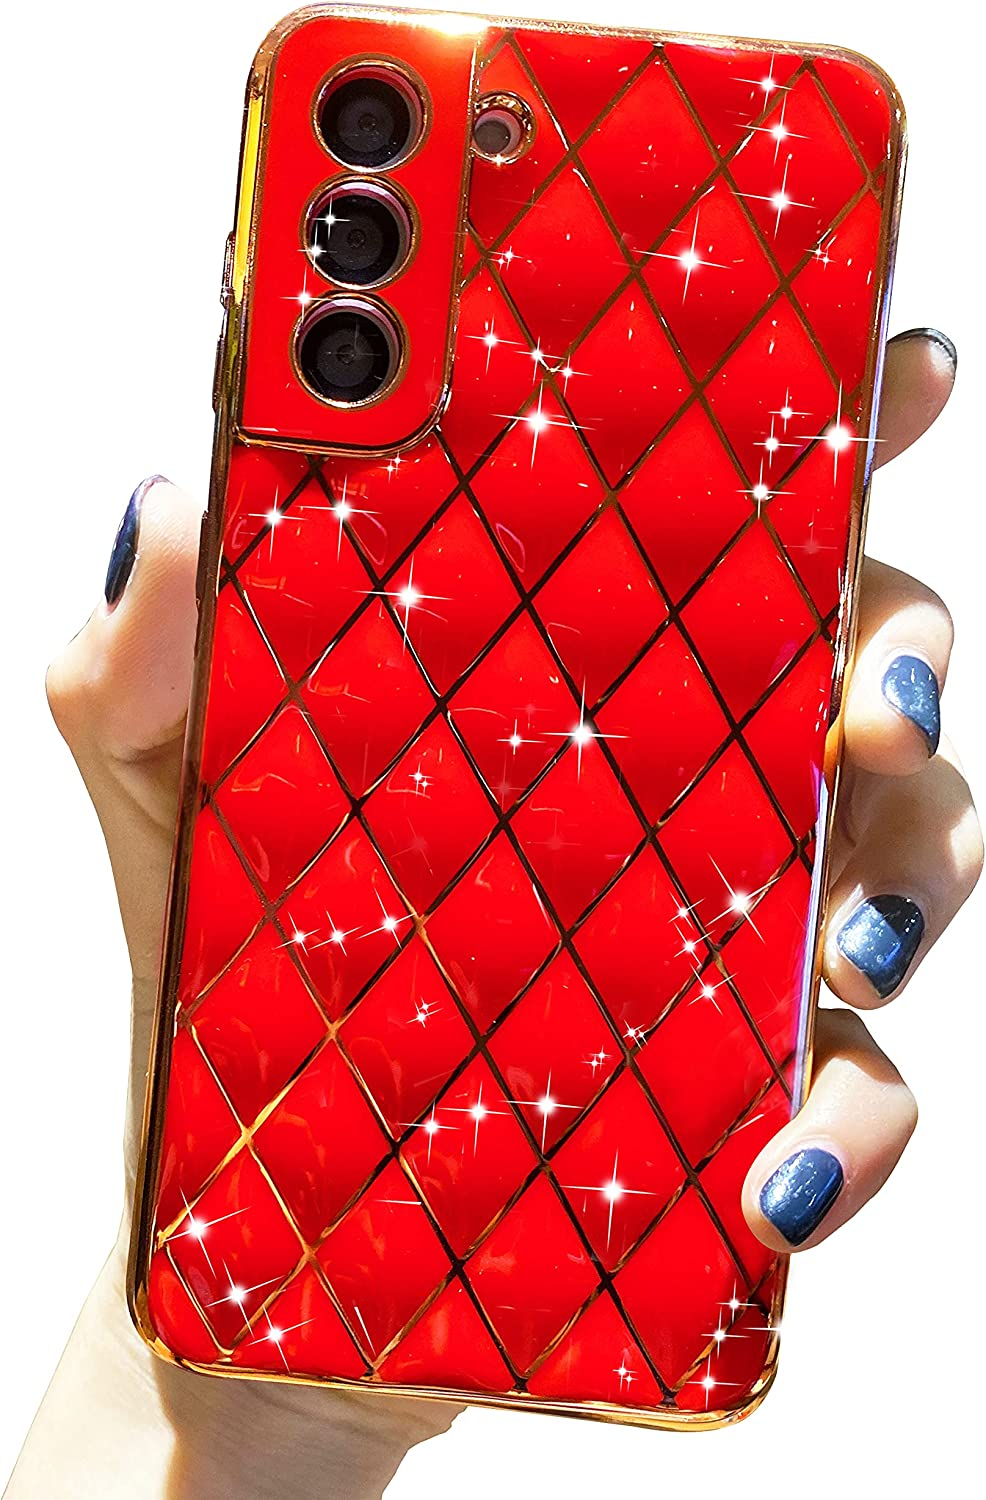 Anynve Compatible with Galaxy S21 Case, Cute Glitter Sparkle Plating Samsung S21 Case, Full Camera Lens Protection & Shockproof Edge Bumper TPU Case Cover for Samsung Galaxy S21 [6.2 inches] -Red